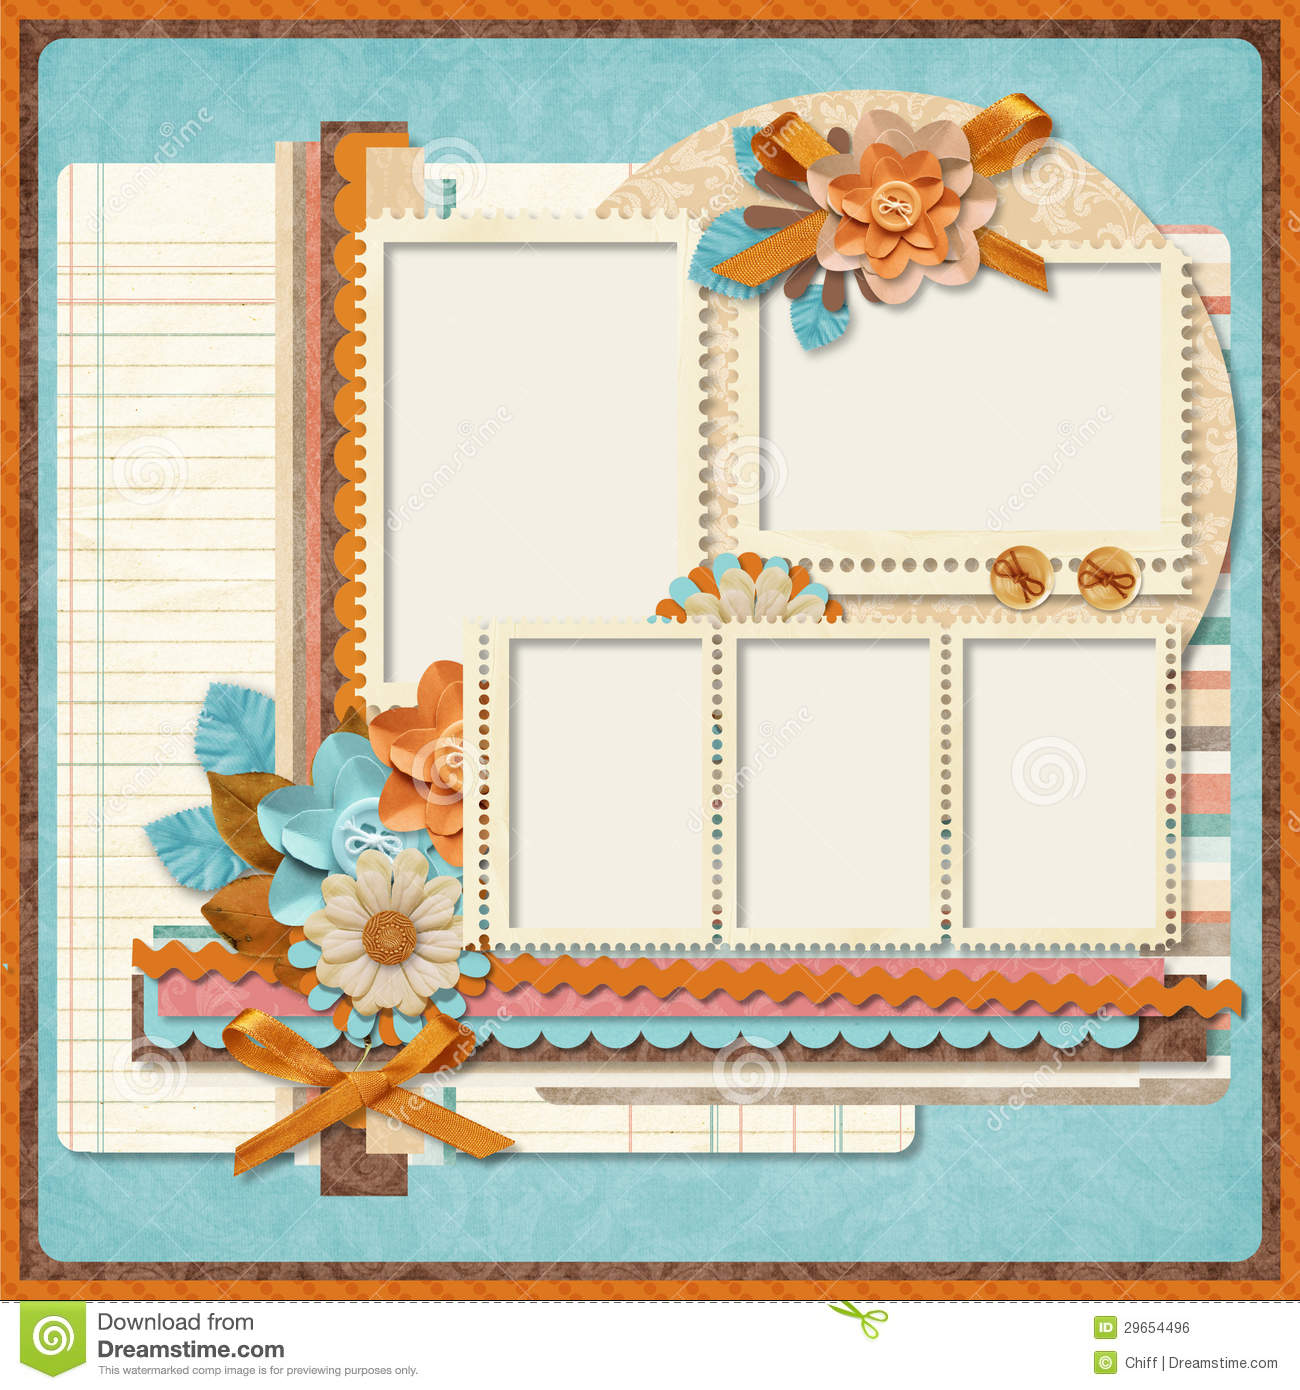 Retro Family Album.365 Project. Scrapbooking Templates.  Free Album Templates